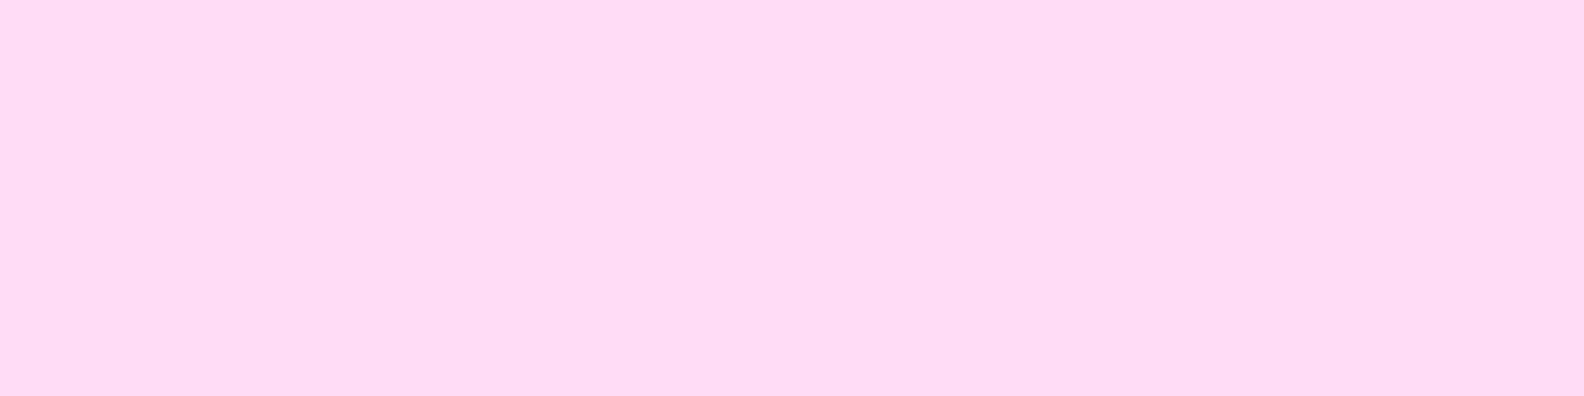 1584x396 Pink Lace Solid Color Background